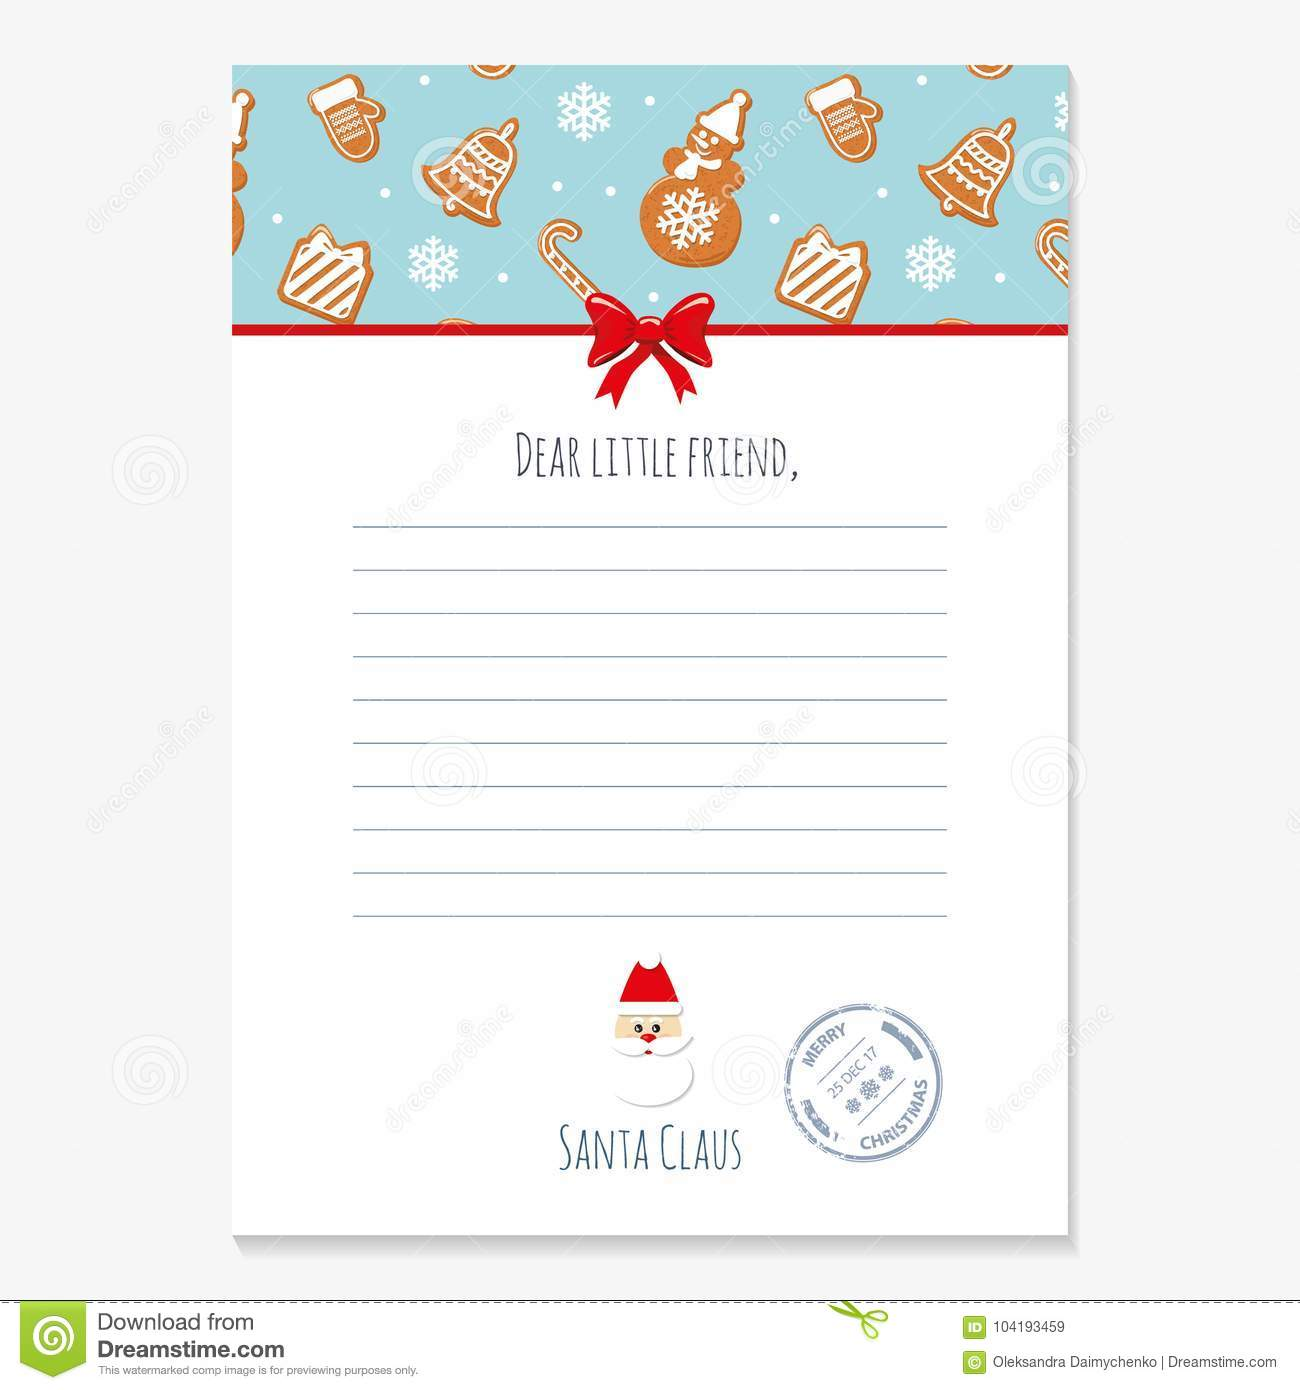 Christmas letter from santa claus template layout in a4 size download christmas letter from santa claus template layout in a4 size pattern with gingerbread spiritdancerdesigns Image collections